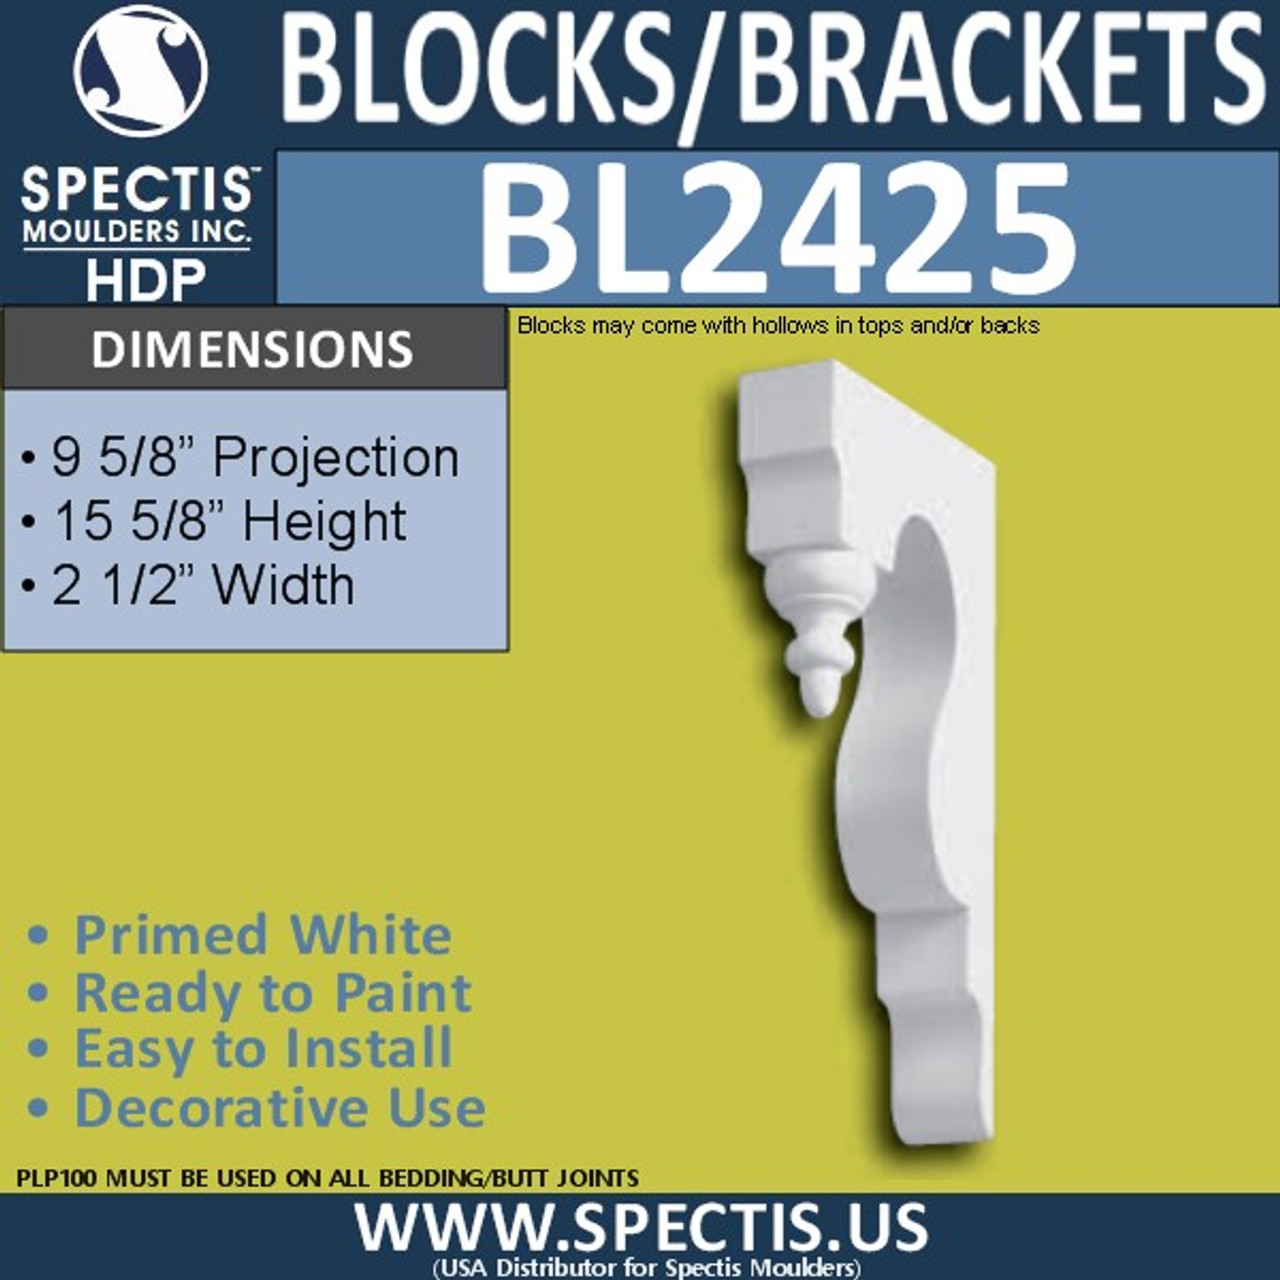 "BL2425 Eave Block or Bracket 2.5""W x 15.5""H x 9.5"" P"